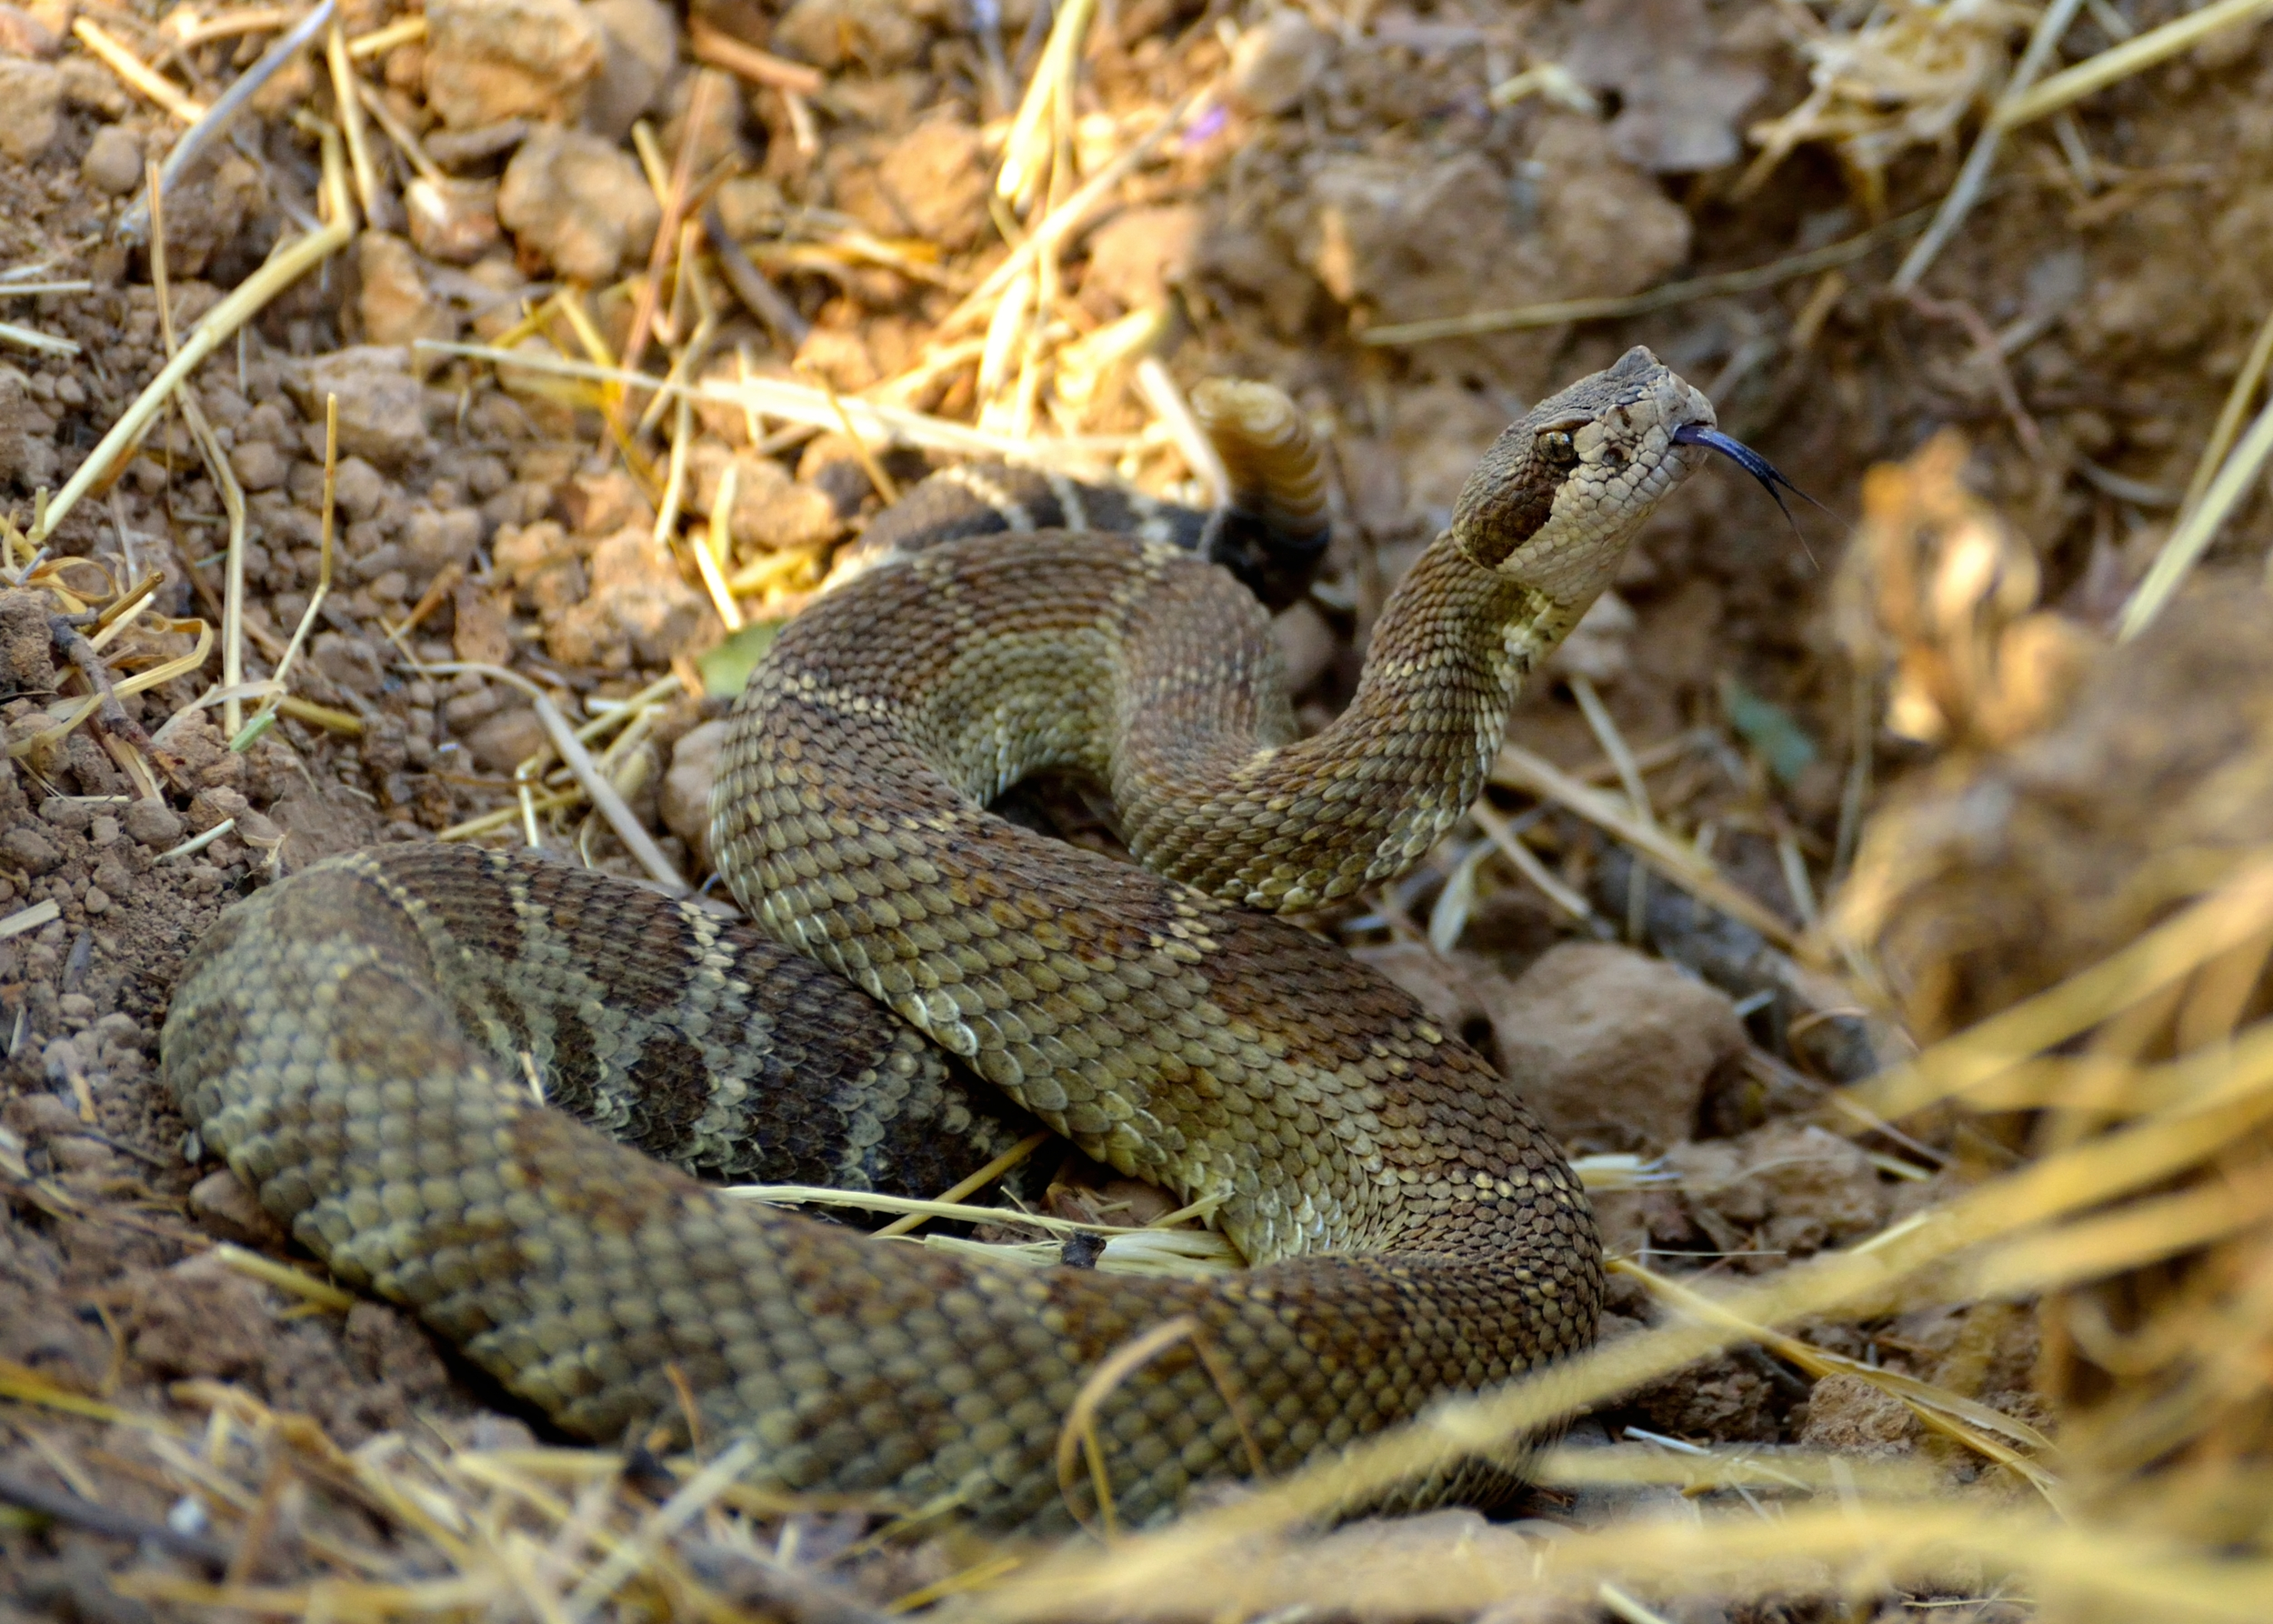 Pacific Rattlesnake by Richard Douse